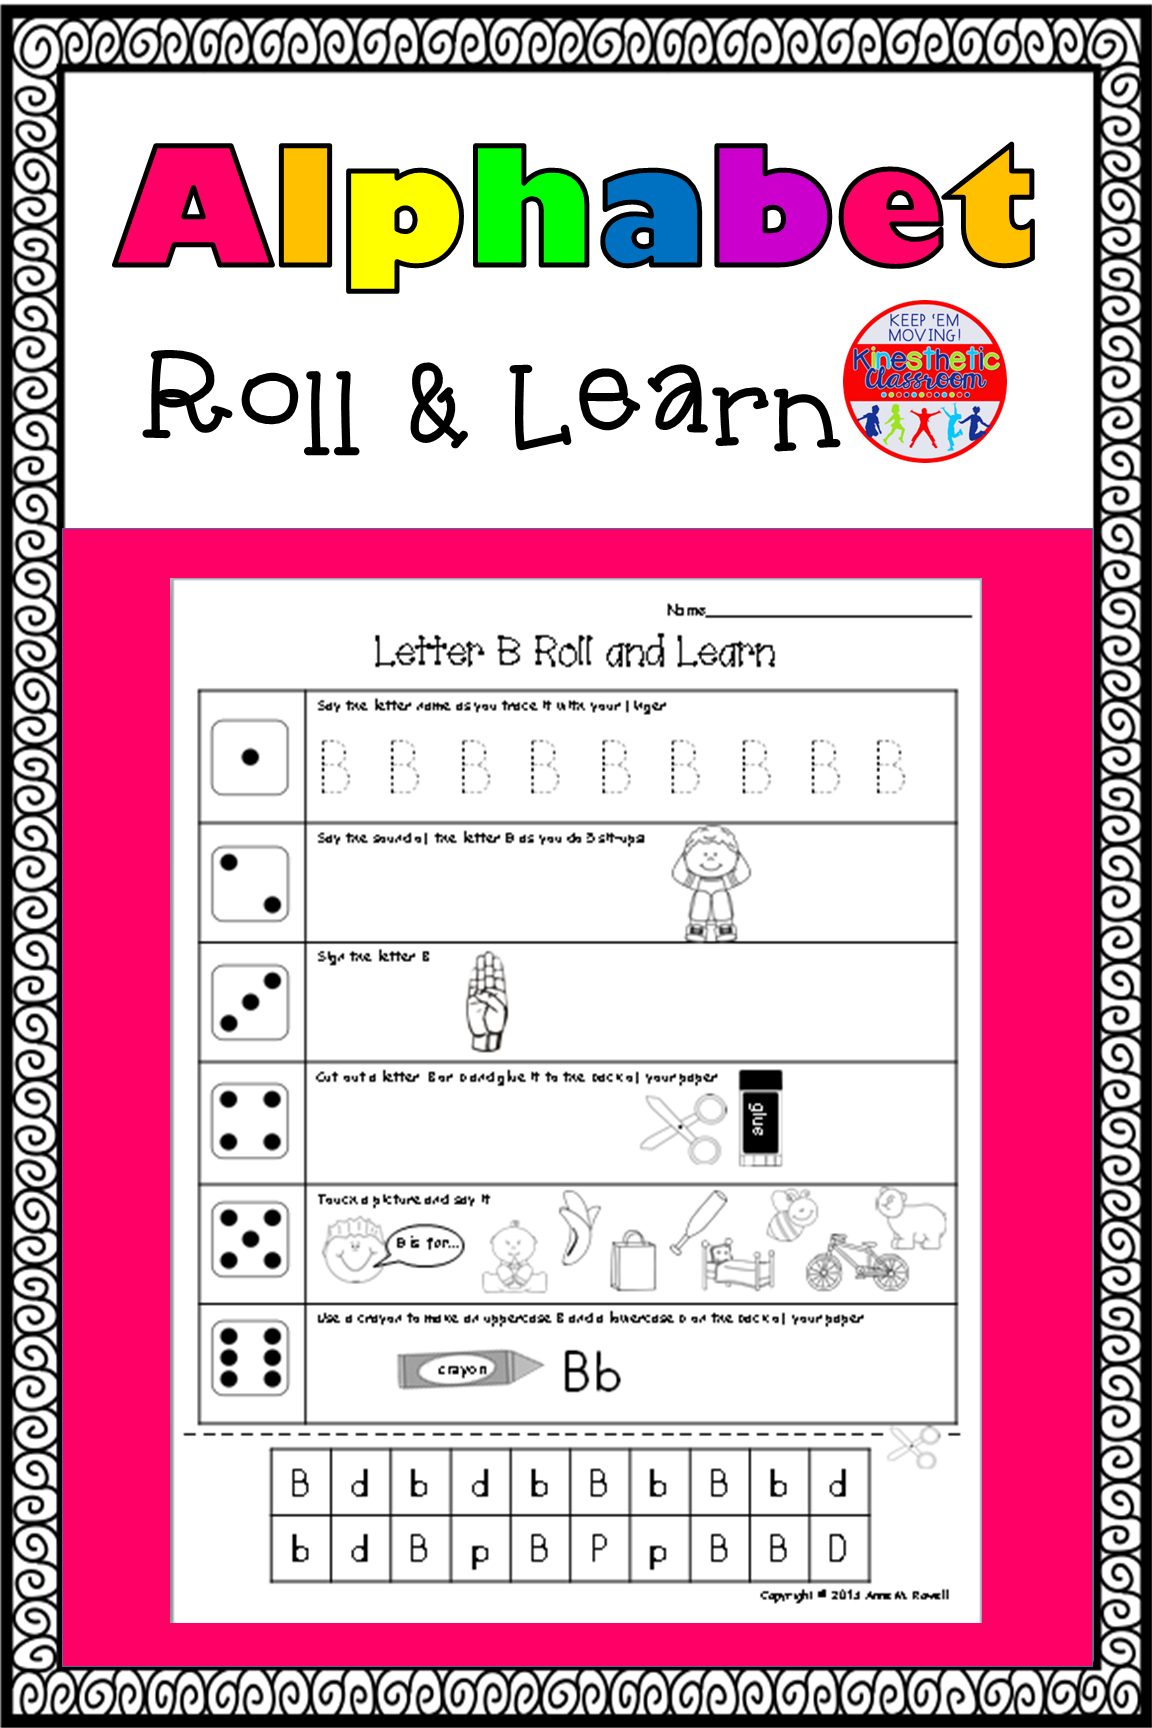 Alphabet Activity Roll and Learn Letter Sounds Learning